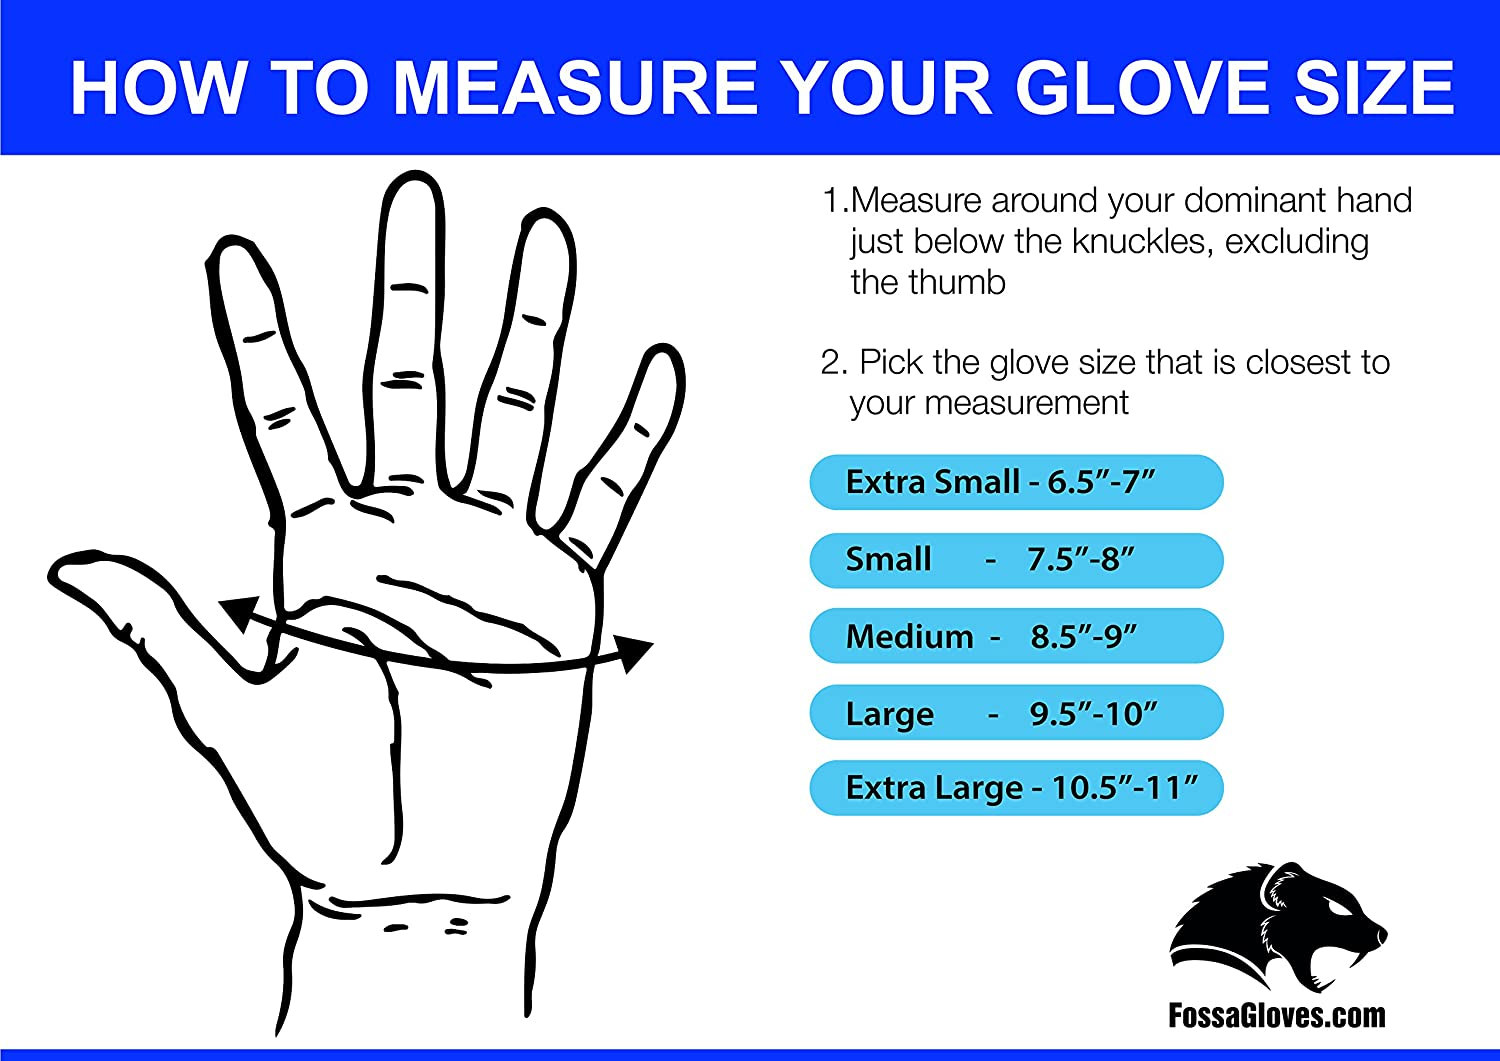 Large Fossa Leather Welding Gloves Top Grain Pearl Gray Kidskin Premium Grade MIG TIG Welders Glove with Para-aramid synthetic fiber Stitching Wing Thumb 4 Cuff and Seamless Forefinger